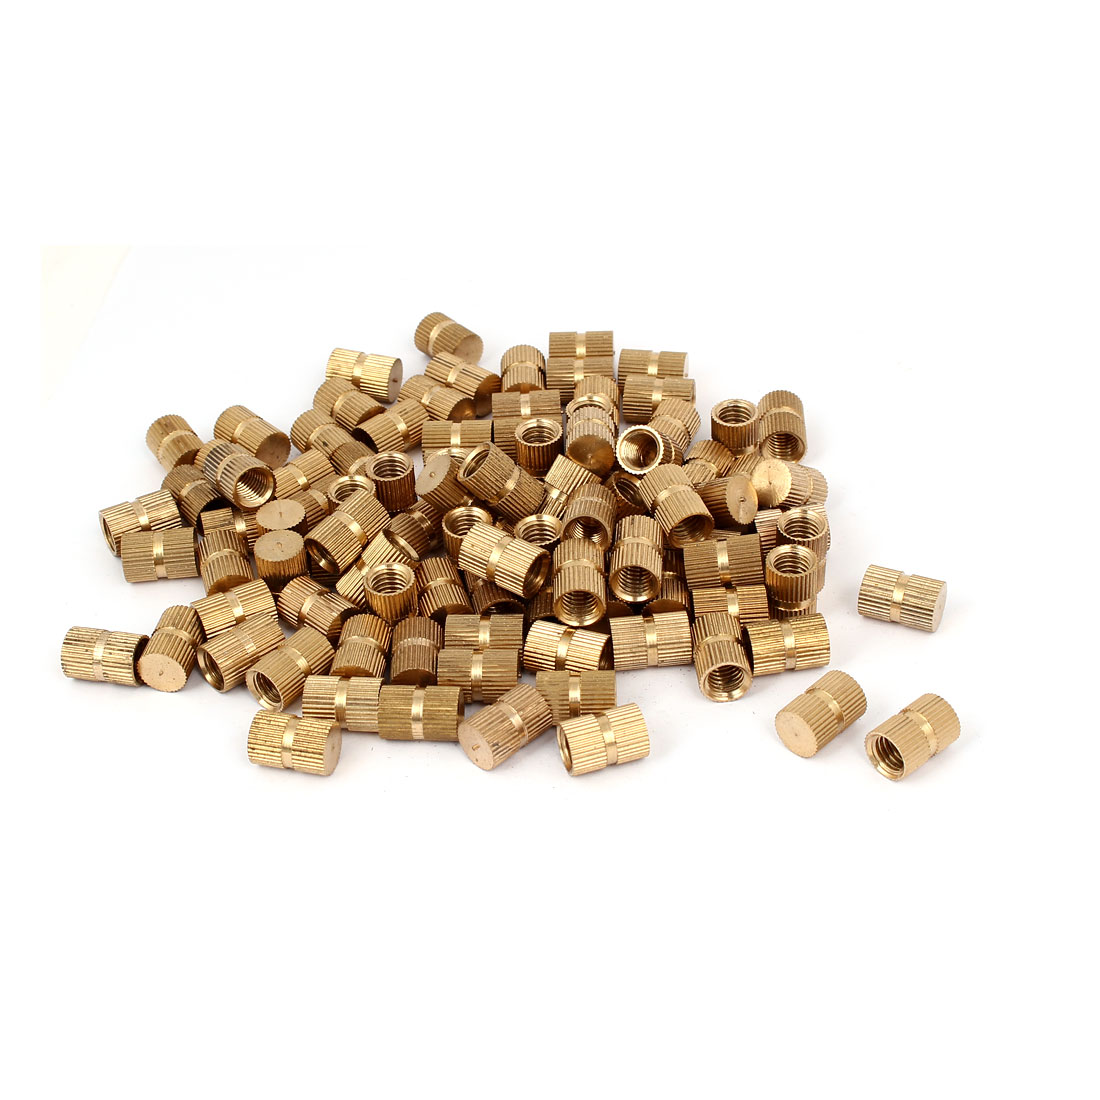 M8 x 15mm 10mm OD Brass Injection Molding Embedded Knurled Thumb Nut 100PCS